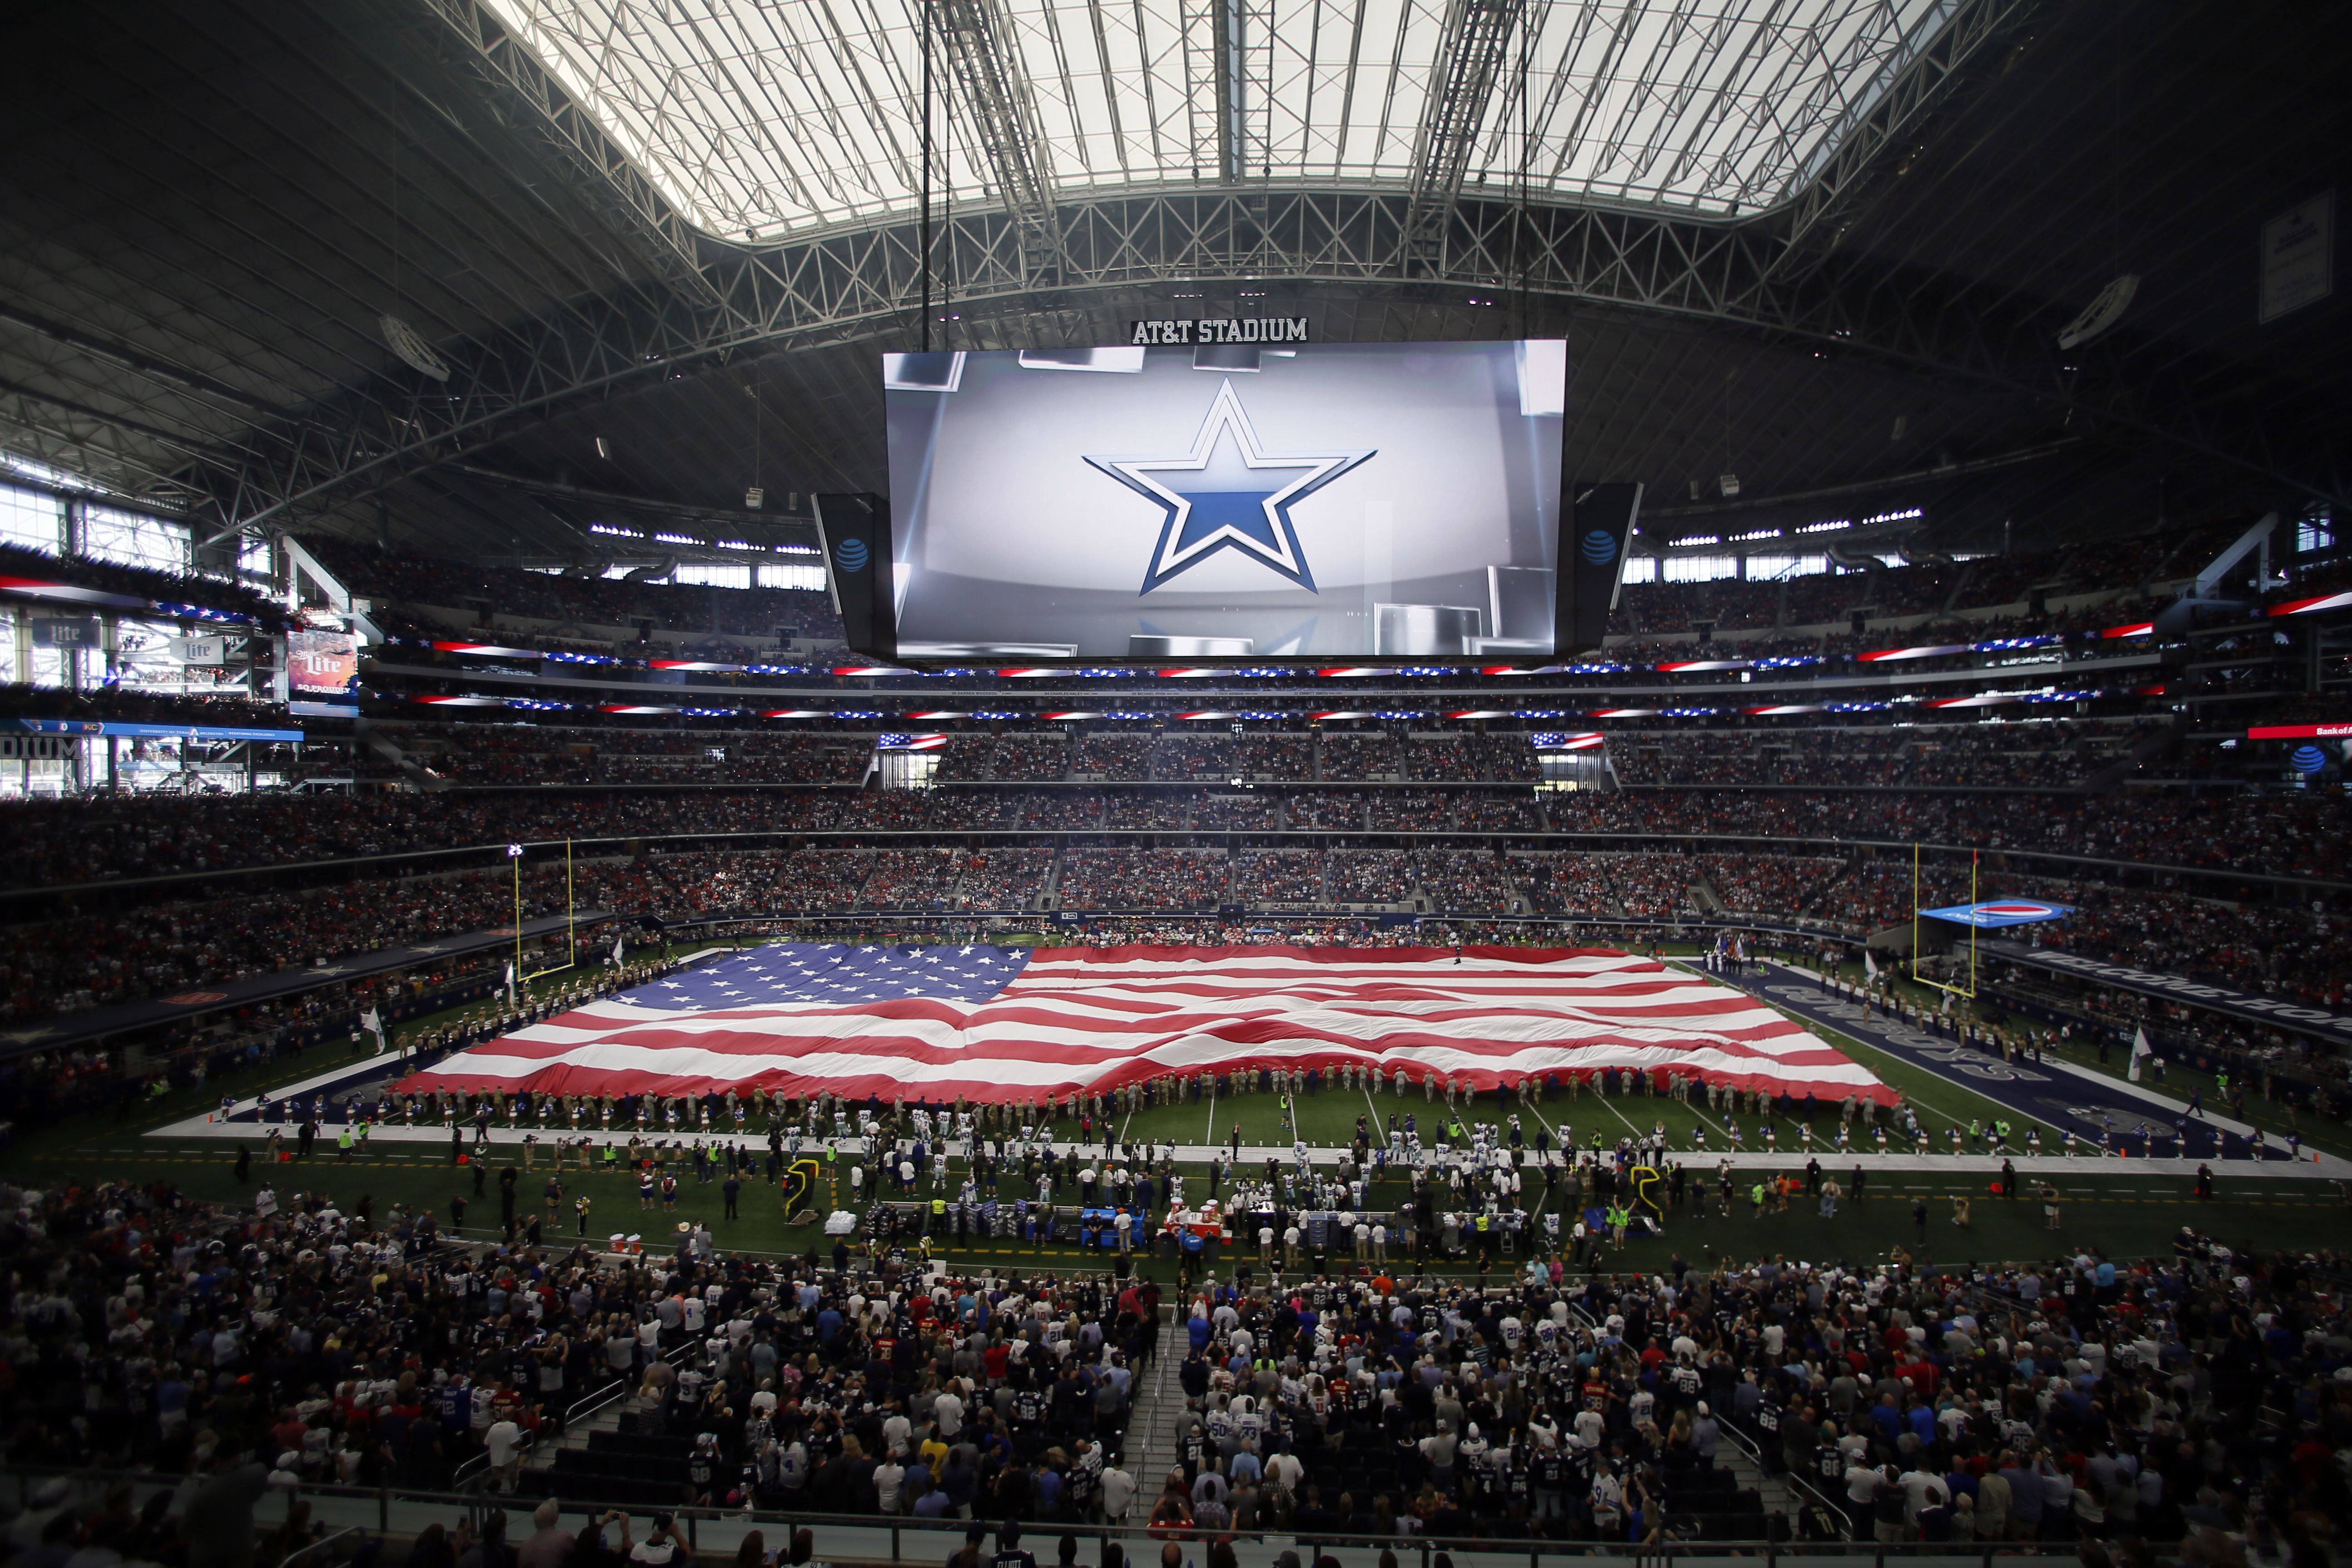 For the 15th straight year, the Dallas Cowboys are the most valuable franchise in the NFL. Per <a...